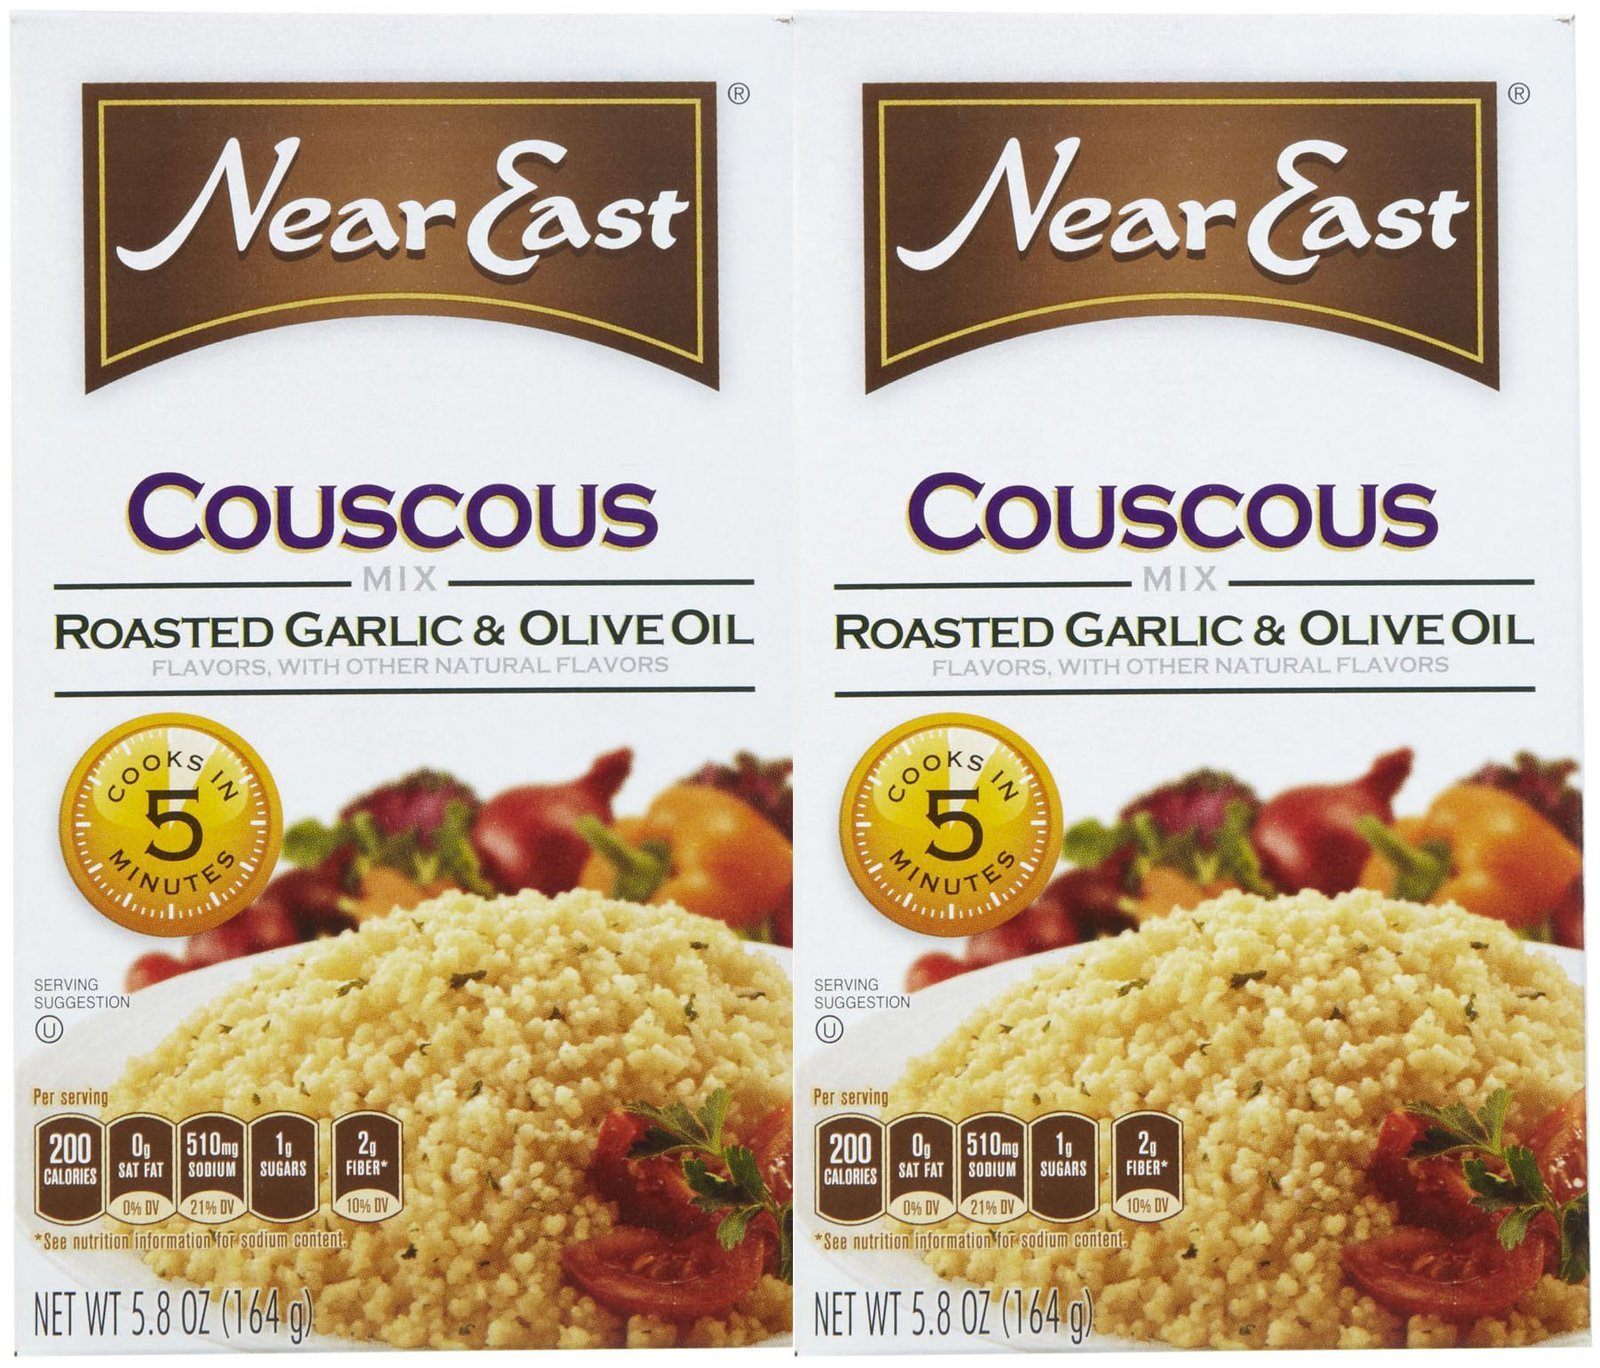 Near East Roasted Garlic & Olive Oil Couscous Mix - 5.8 oz - 2 pk